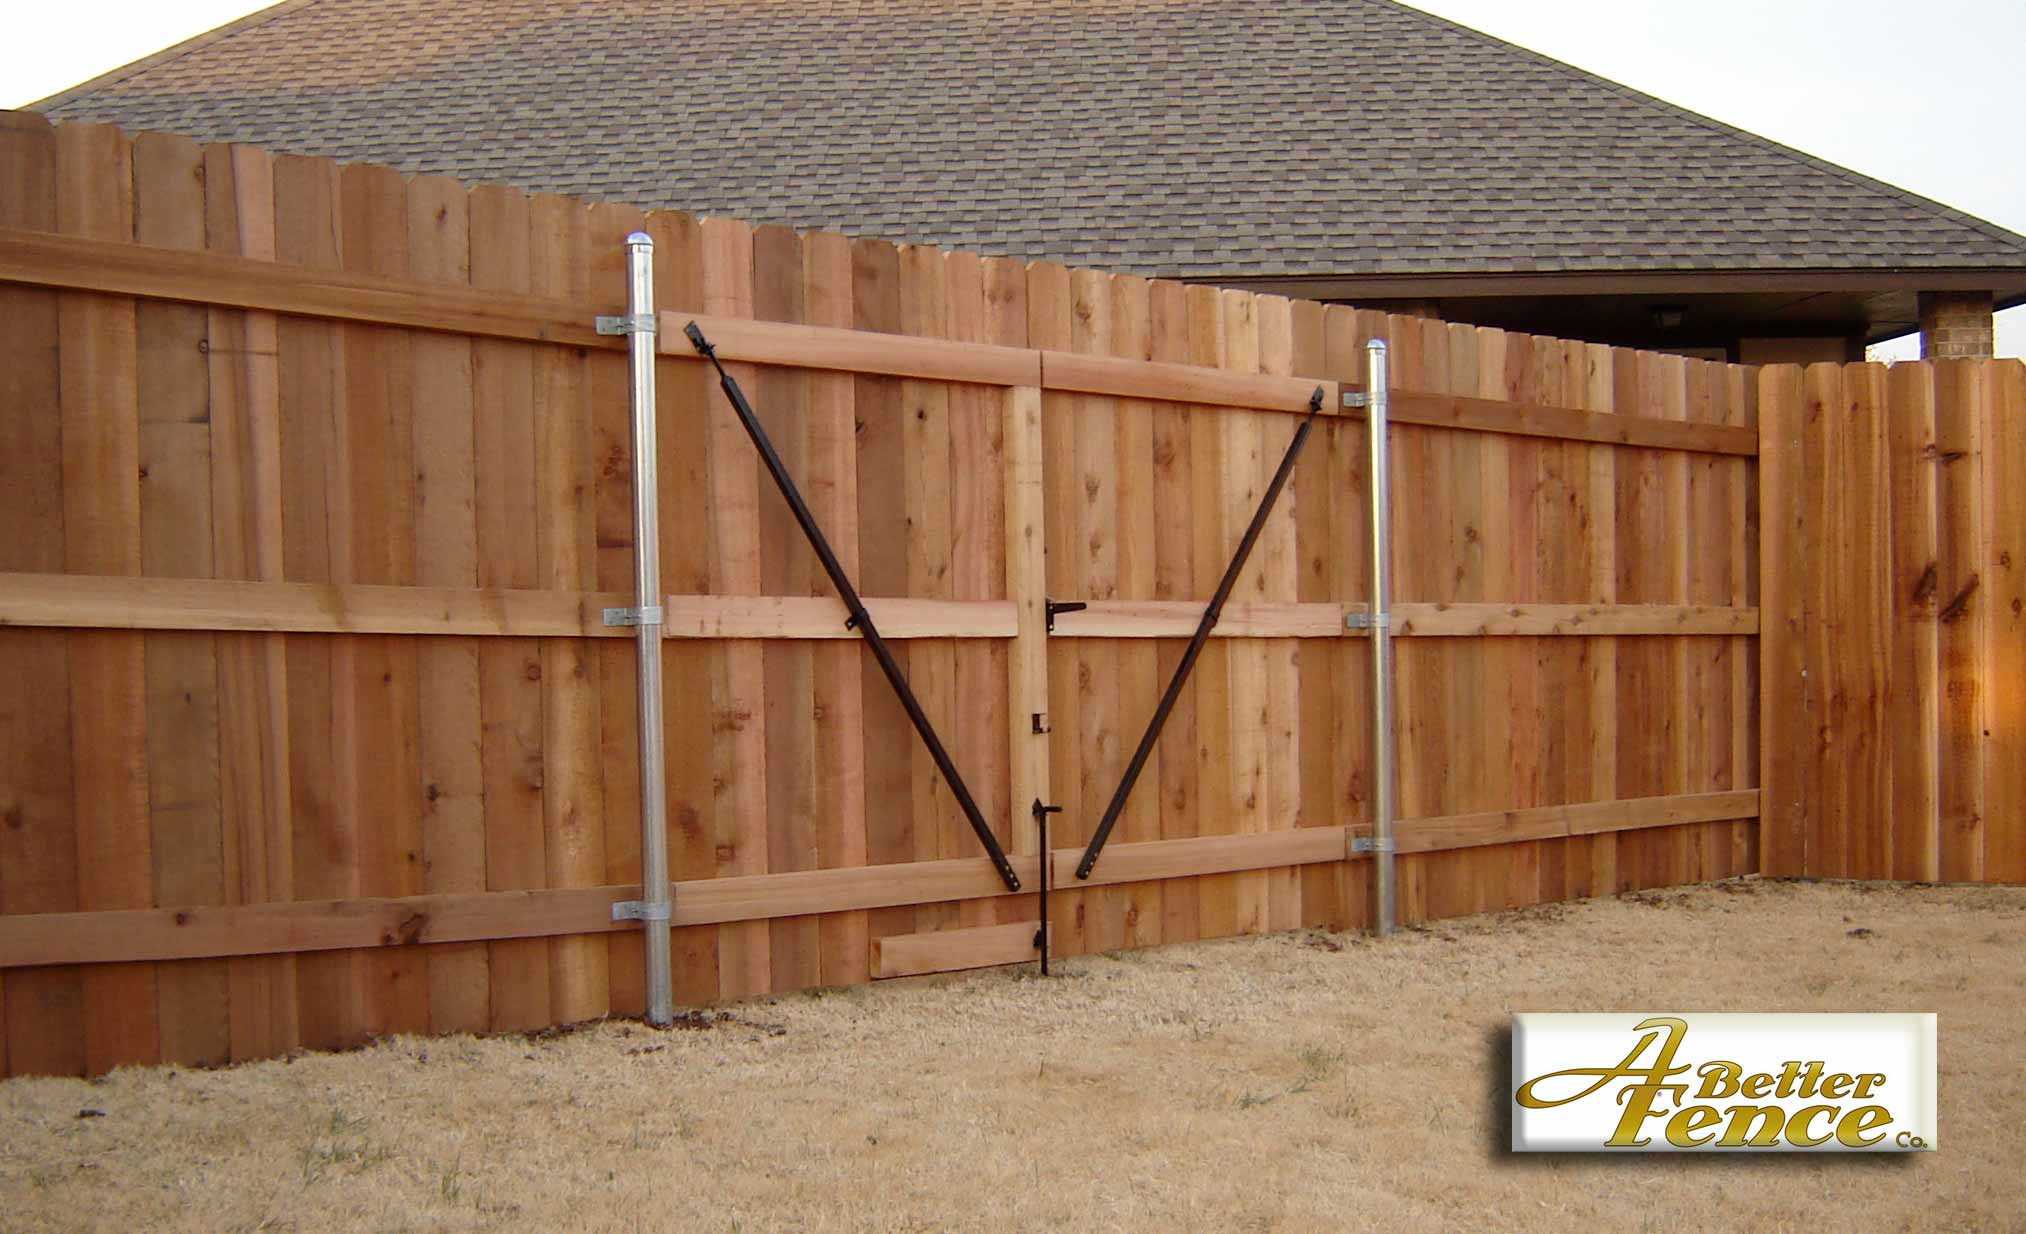 Fence Board - Excellent Material 17